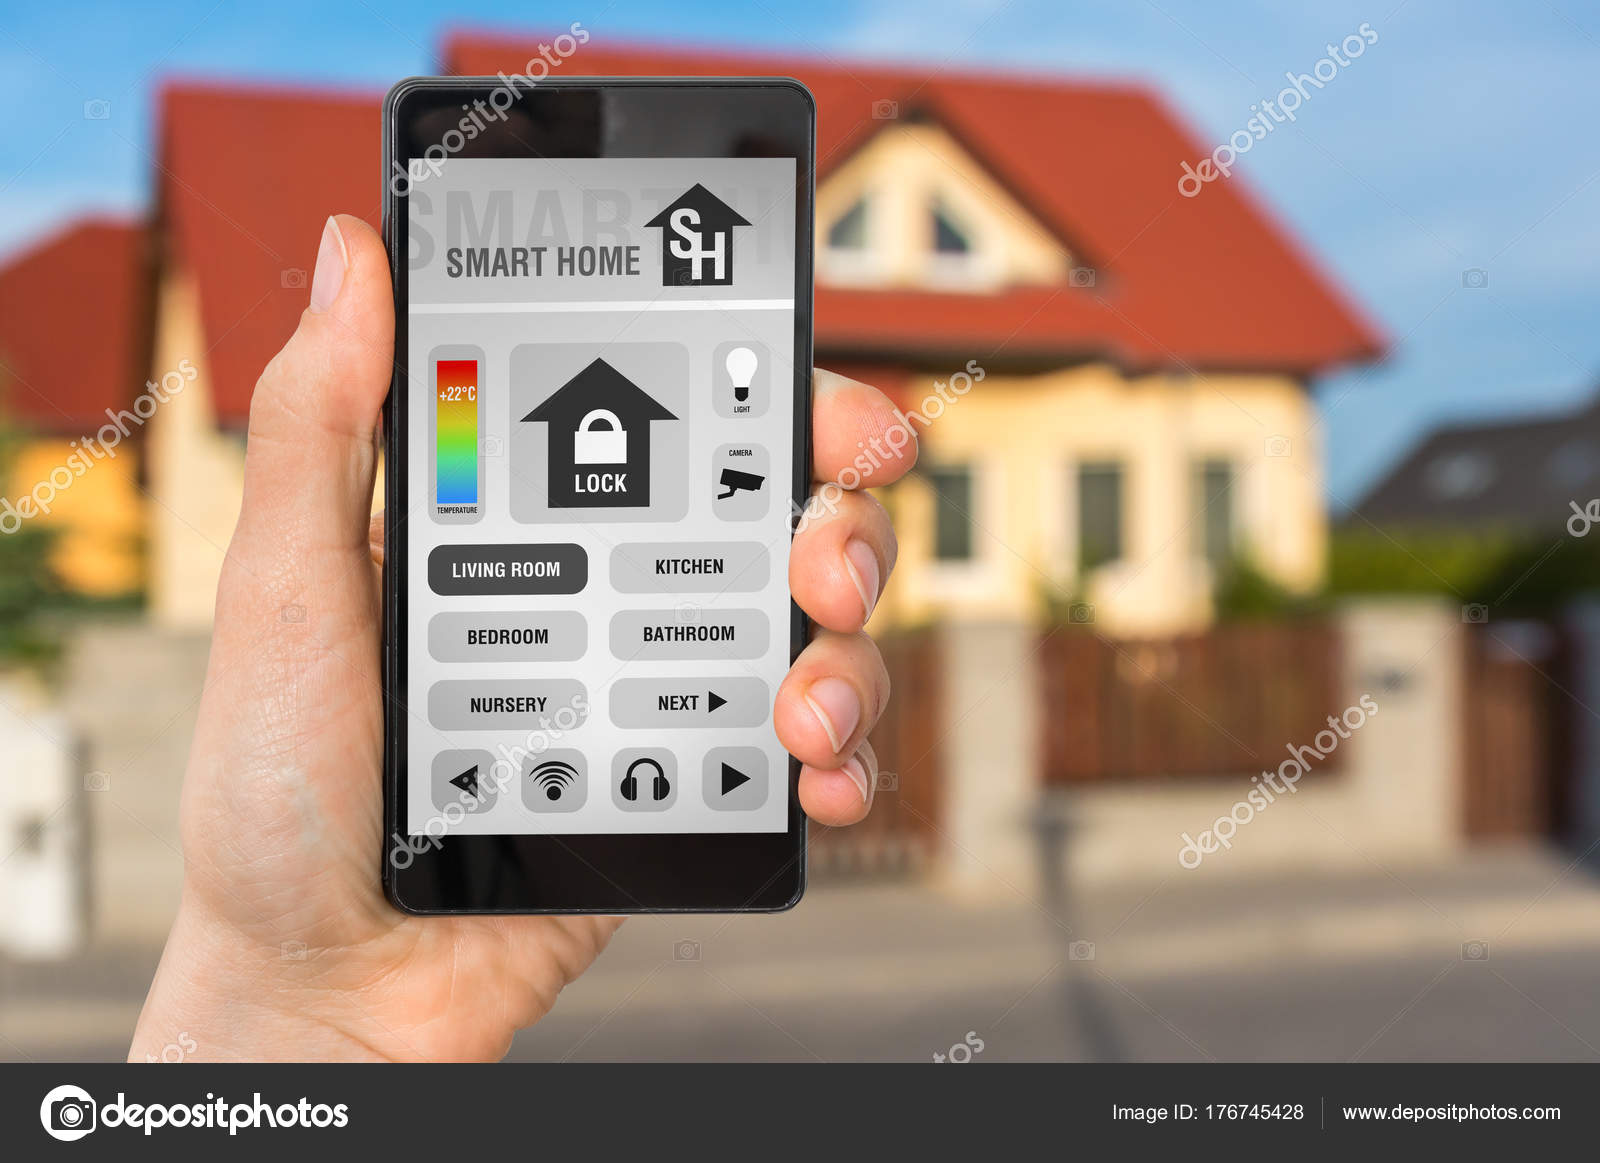 Smart Home Fernbedienung Smartphone Mit Fernbedienung Smart Home System Stockfoto